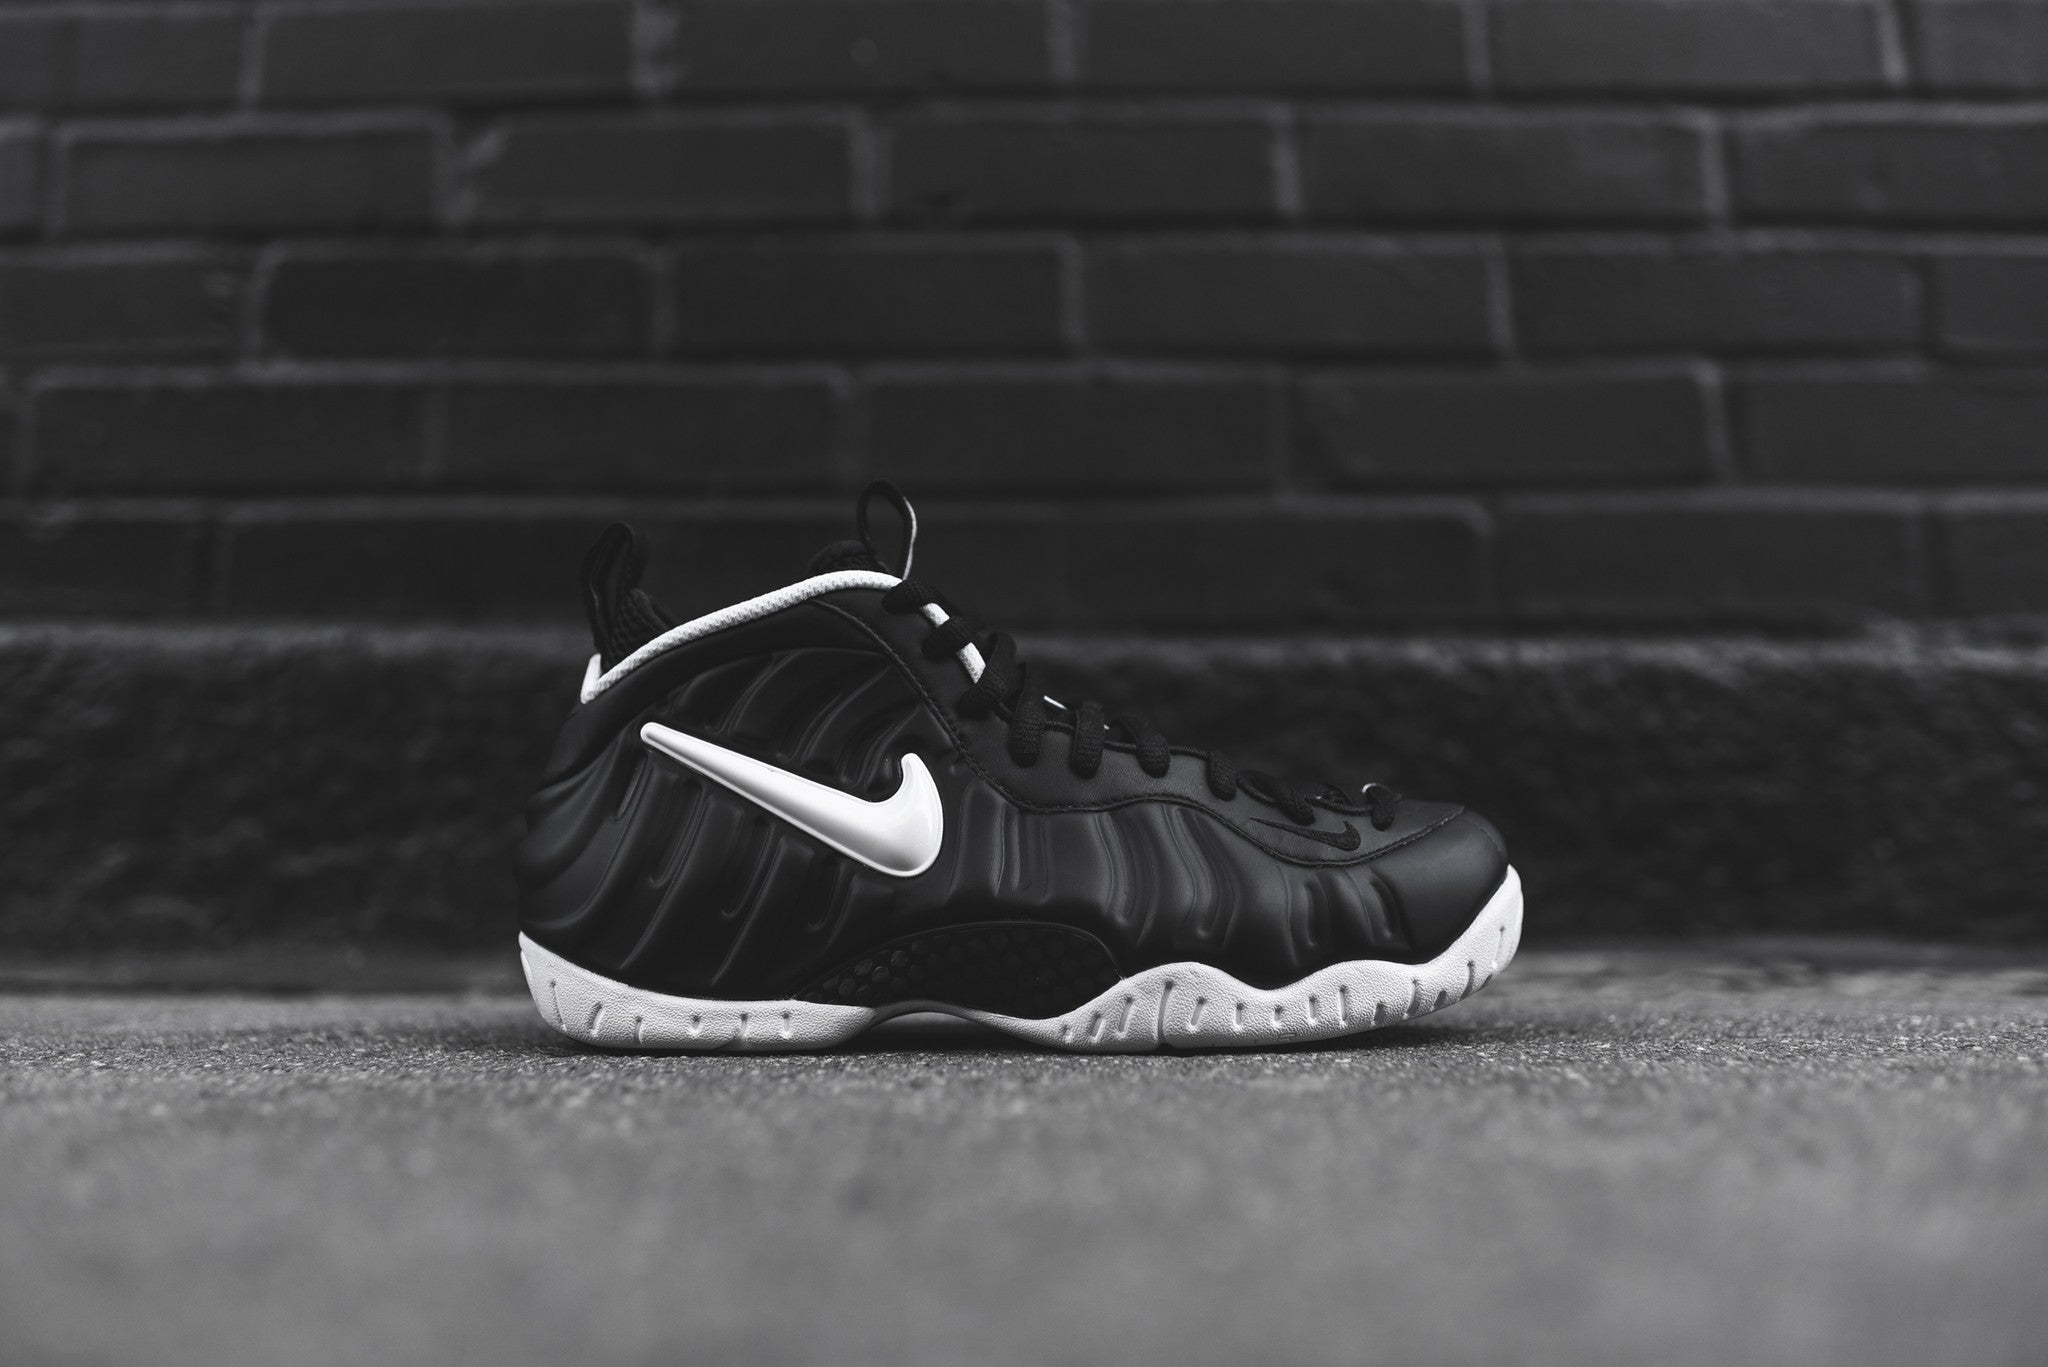 Nike Air Foamposite Pro QS - Dr. Doom